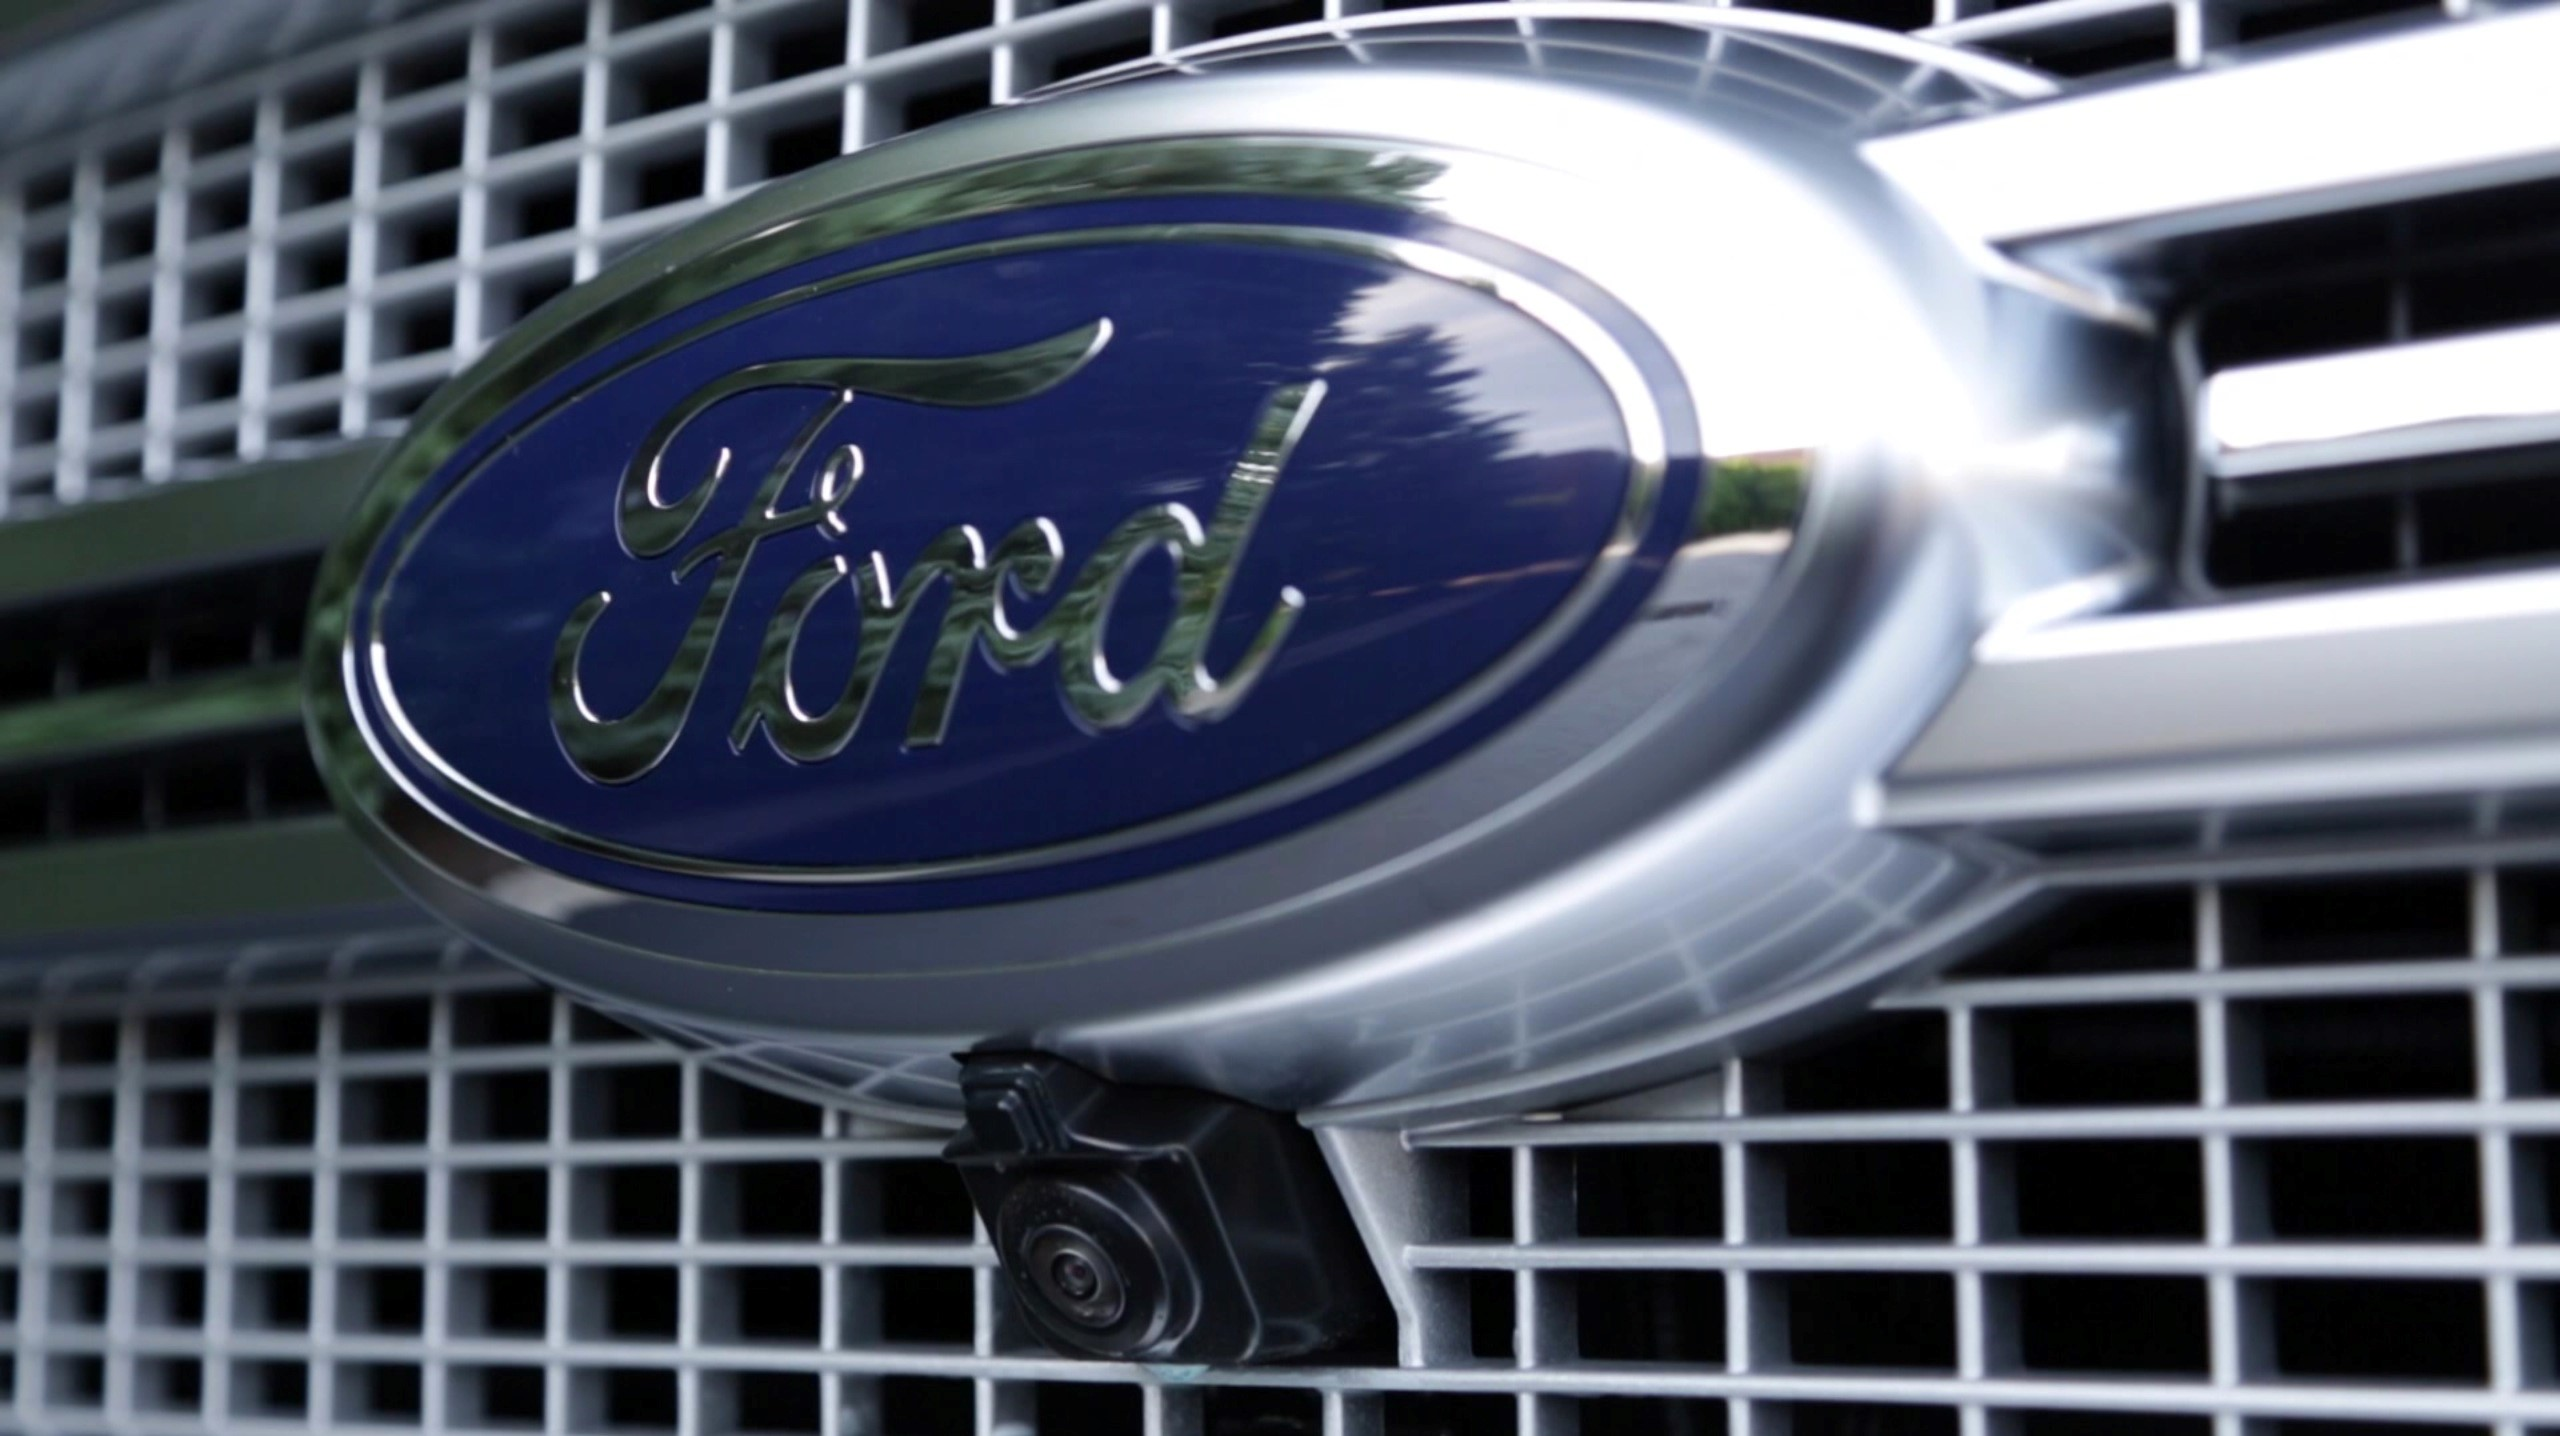 The accessible front-view camera on name F-150 models lay discretely next a Ford badge.